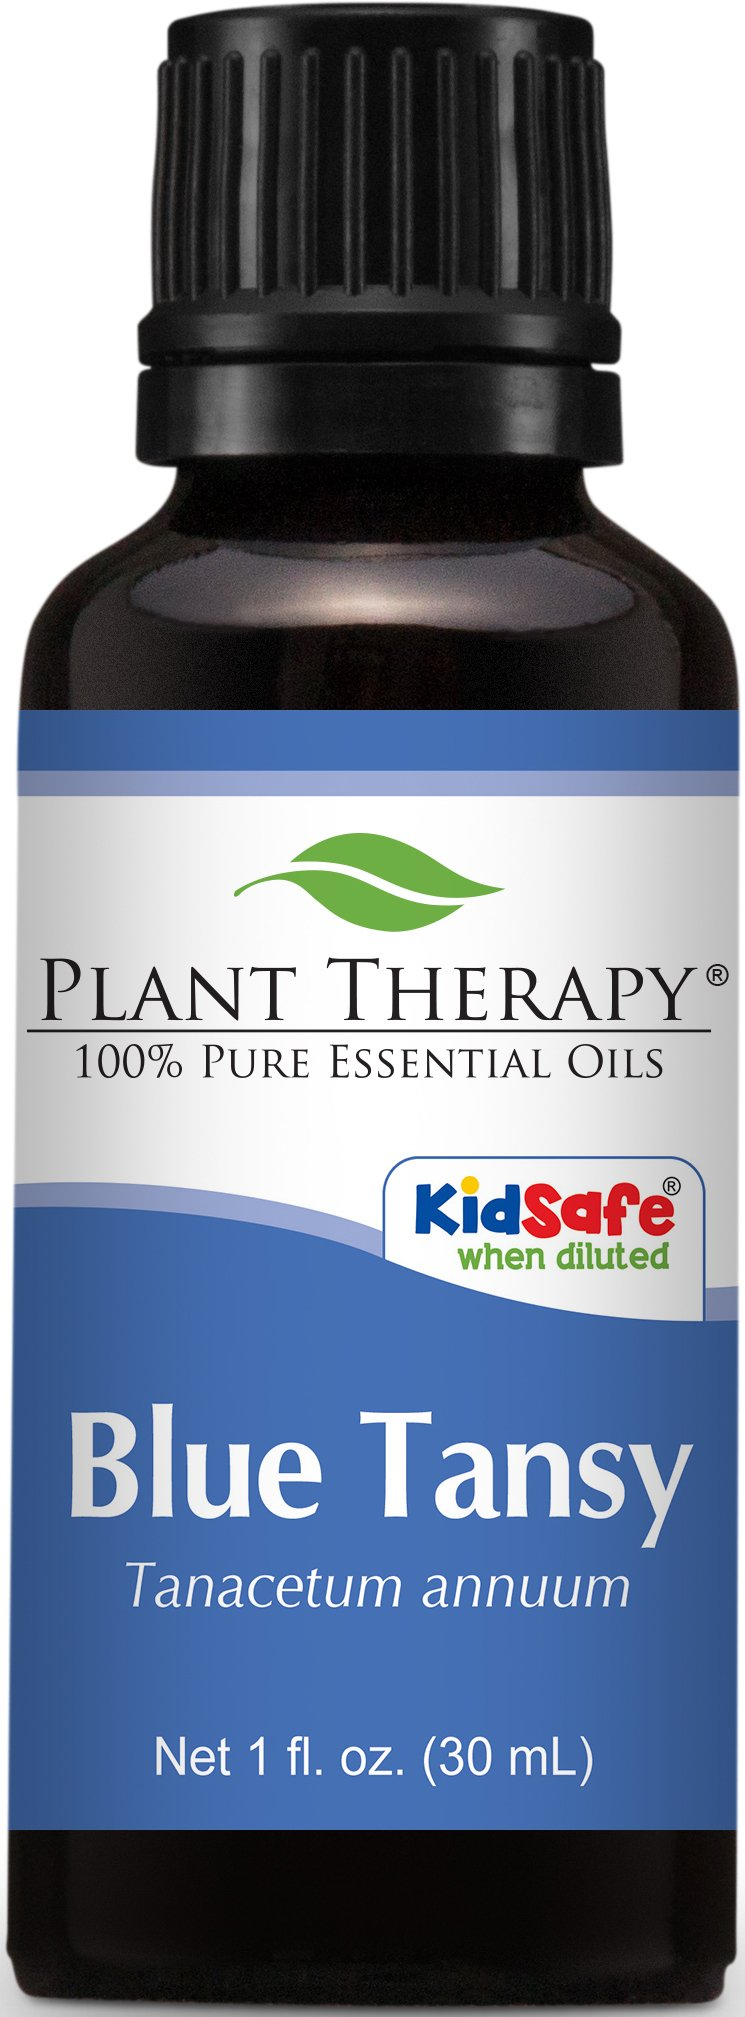 Plant Therapy Blue Tansy Essential Oil. 100% Pure, Undiluted, Therapeutic Grade. 30 ml (1 oz). by Plant Therapy